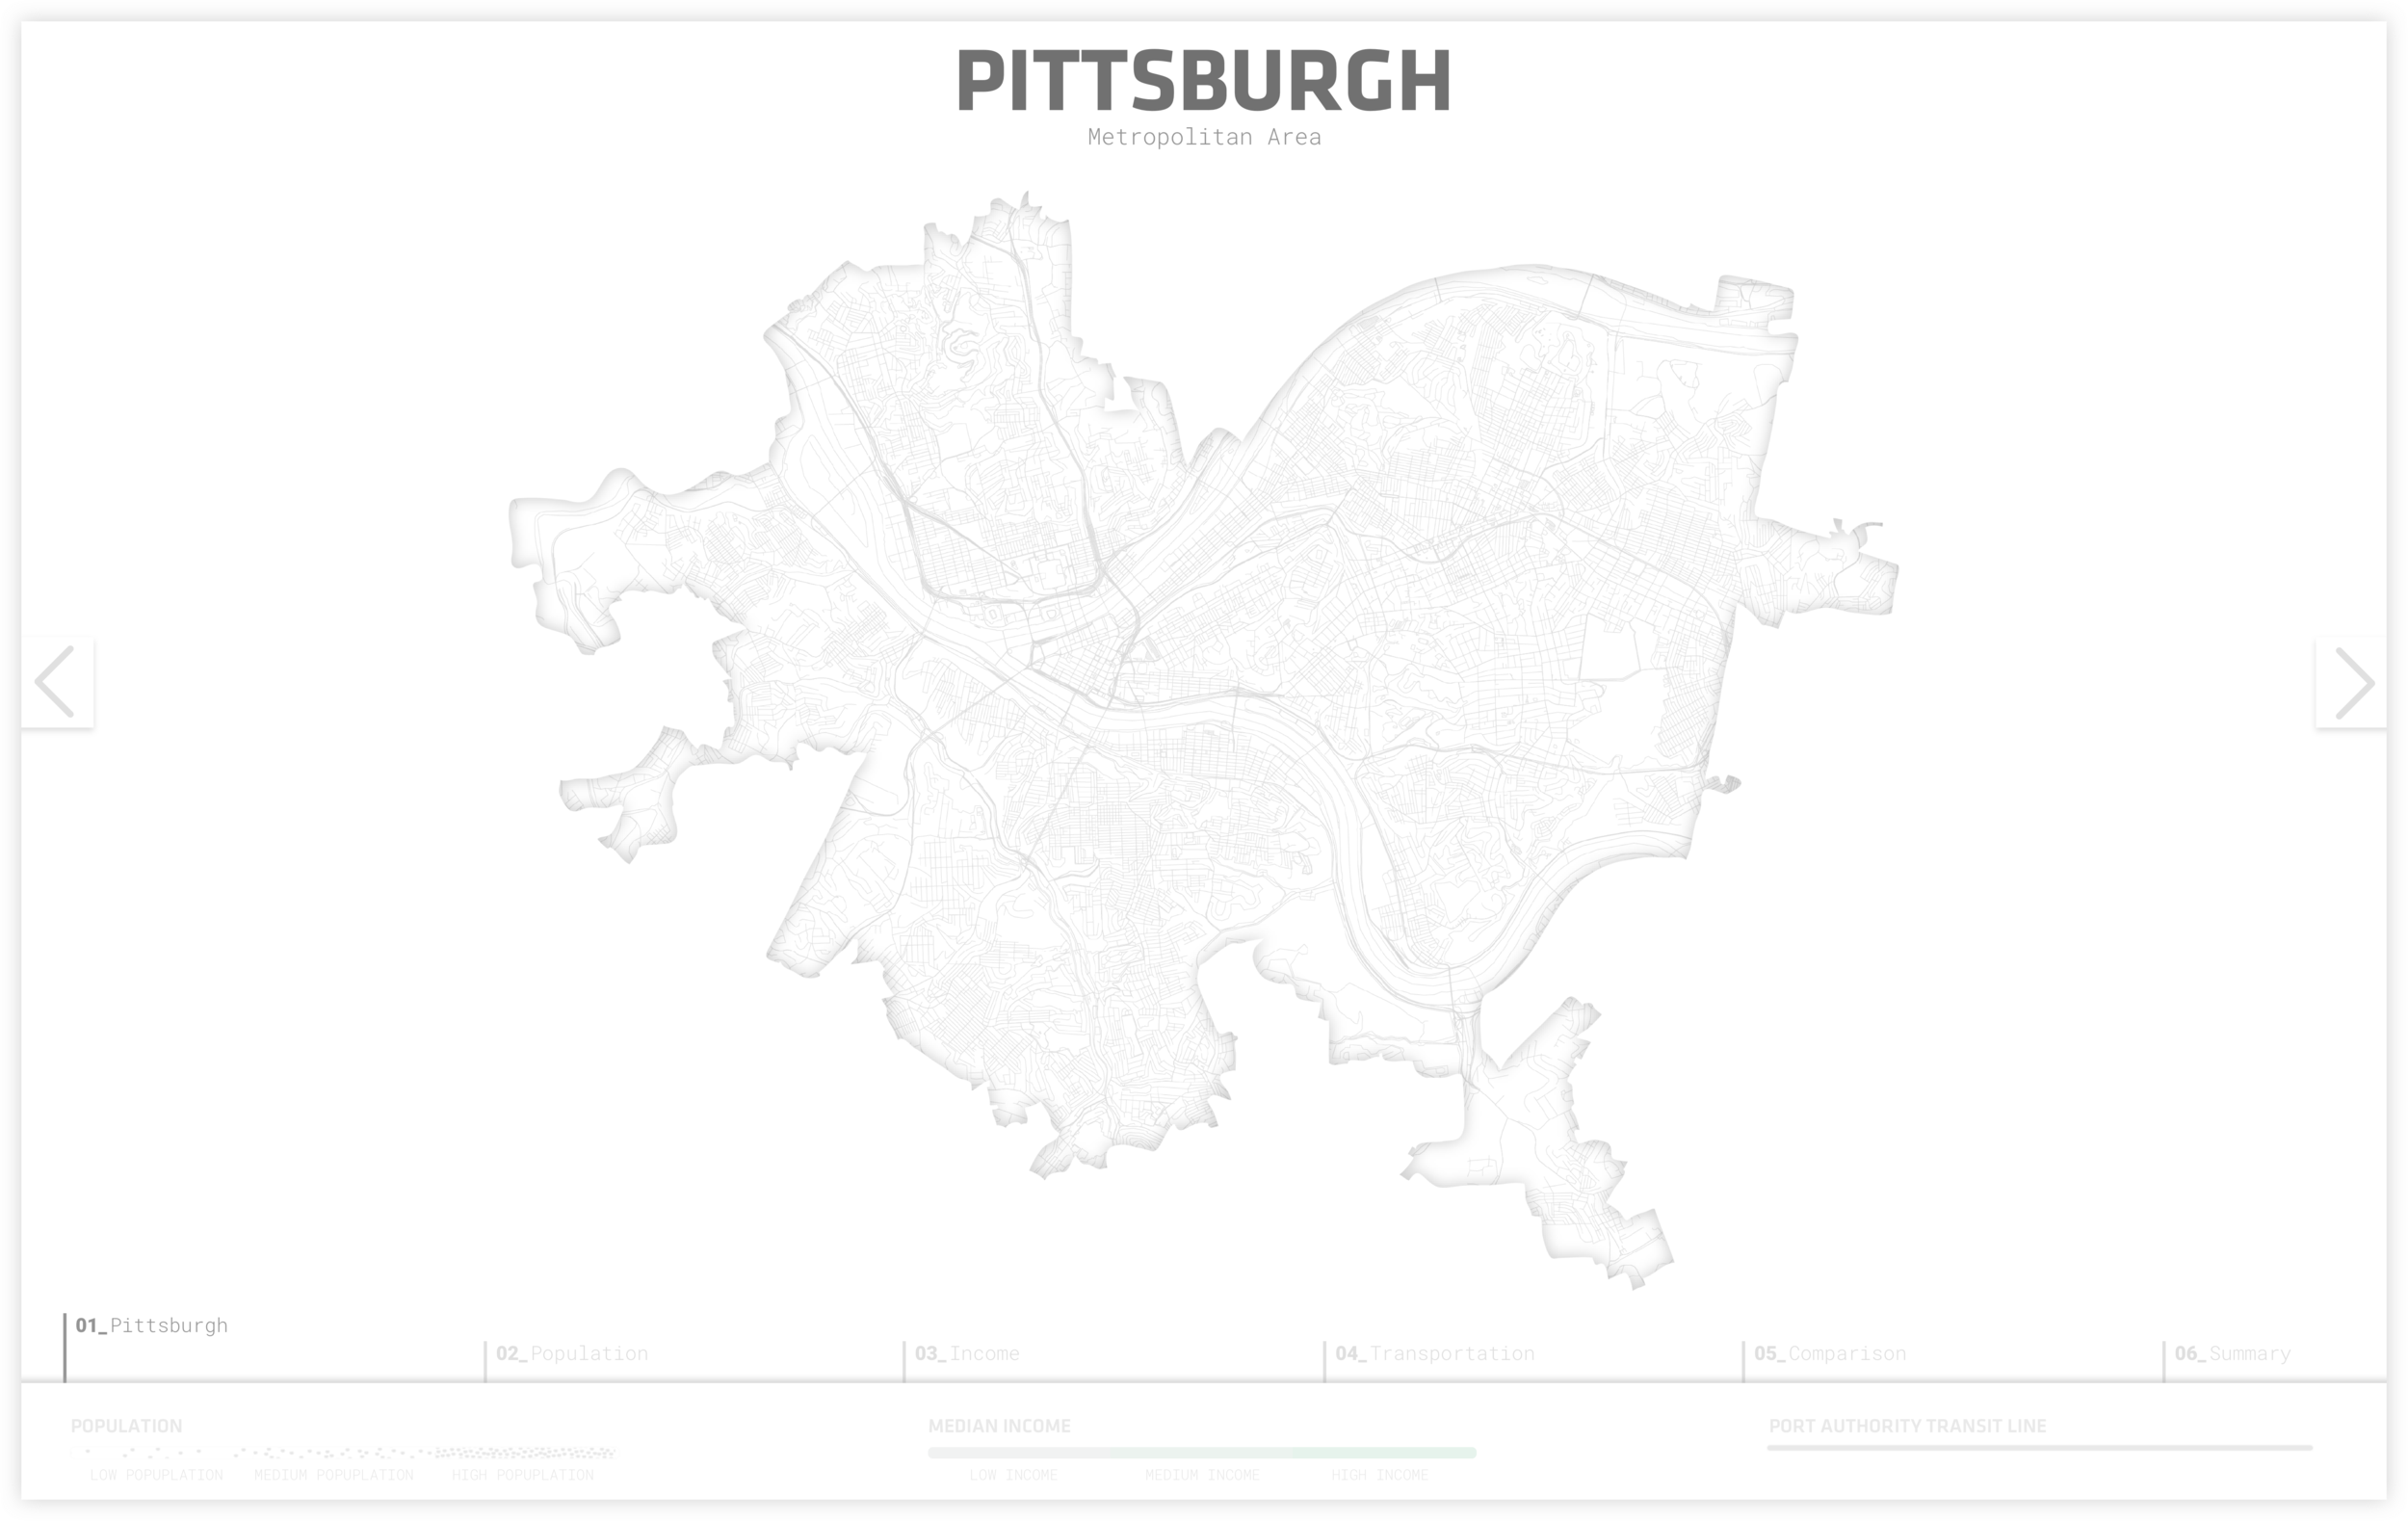 01_Pittsburgh.png